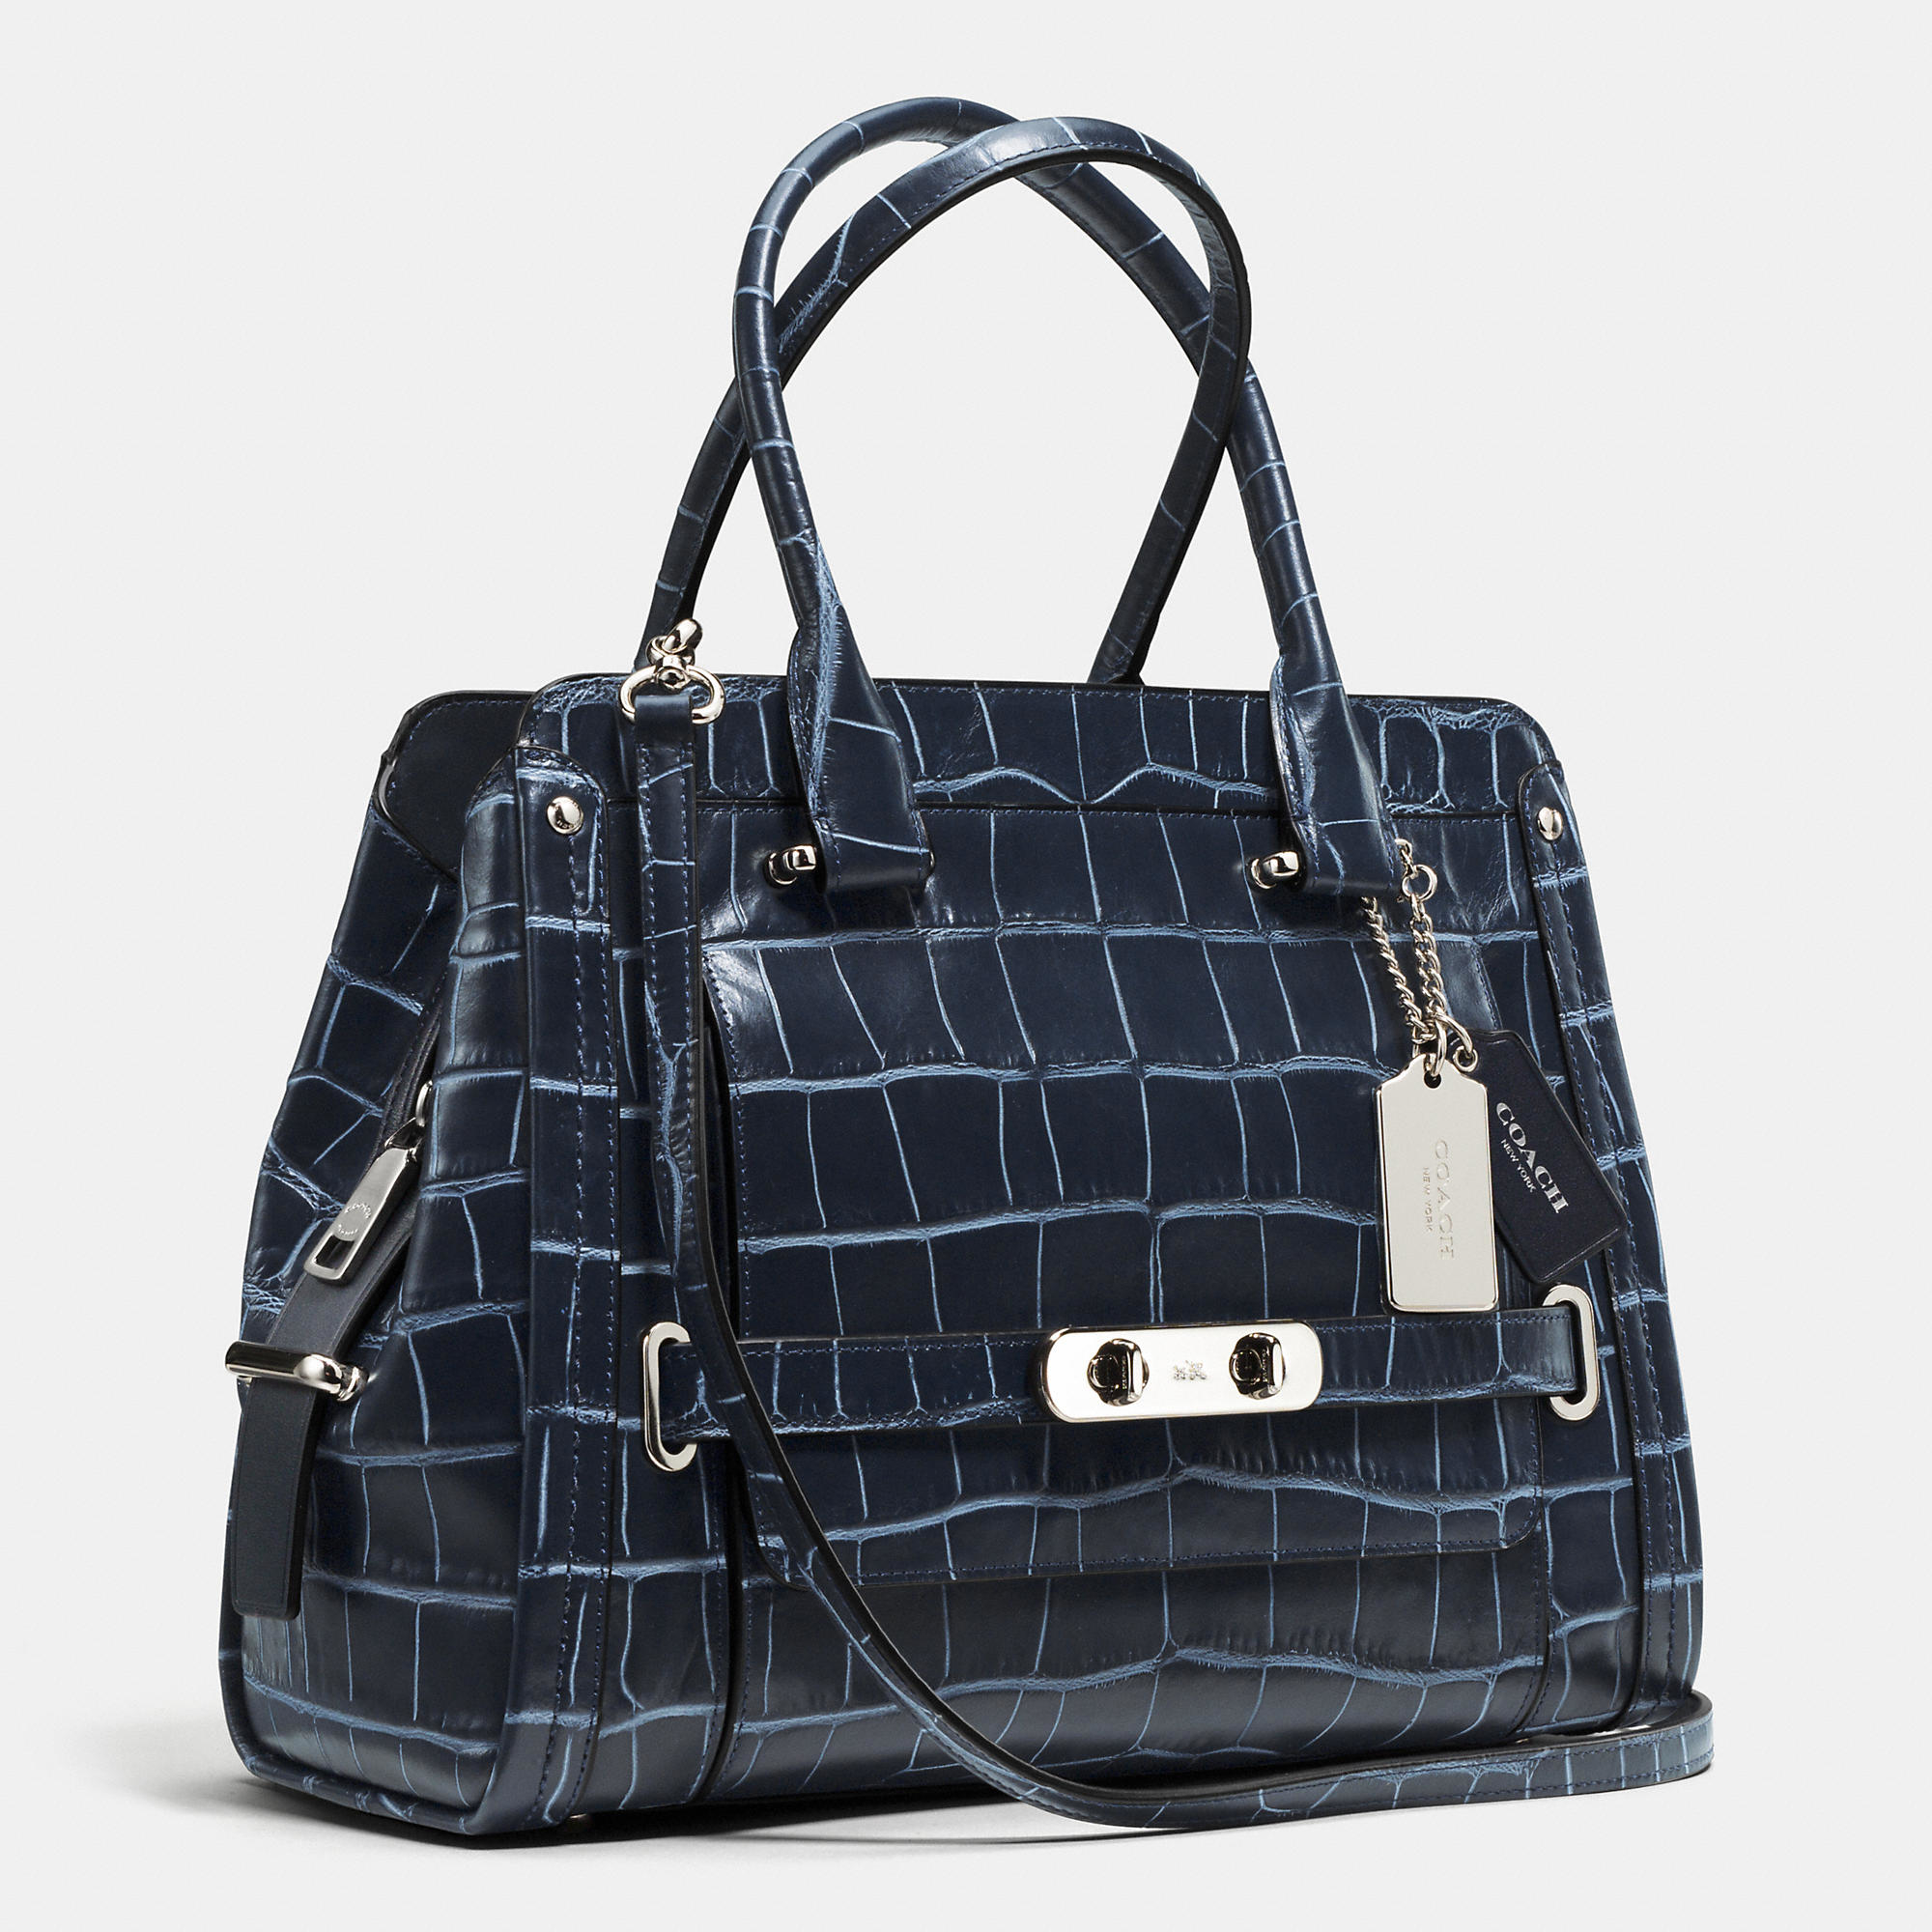 Coach Swagger Frame Satchel In Denim Croc Embossed Leather